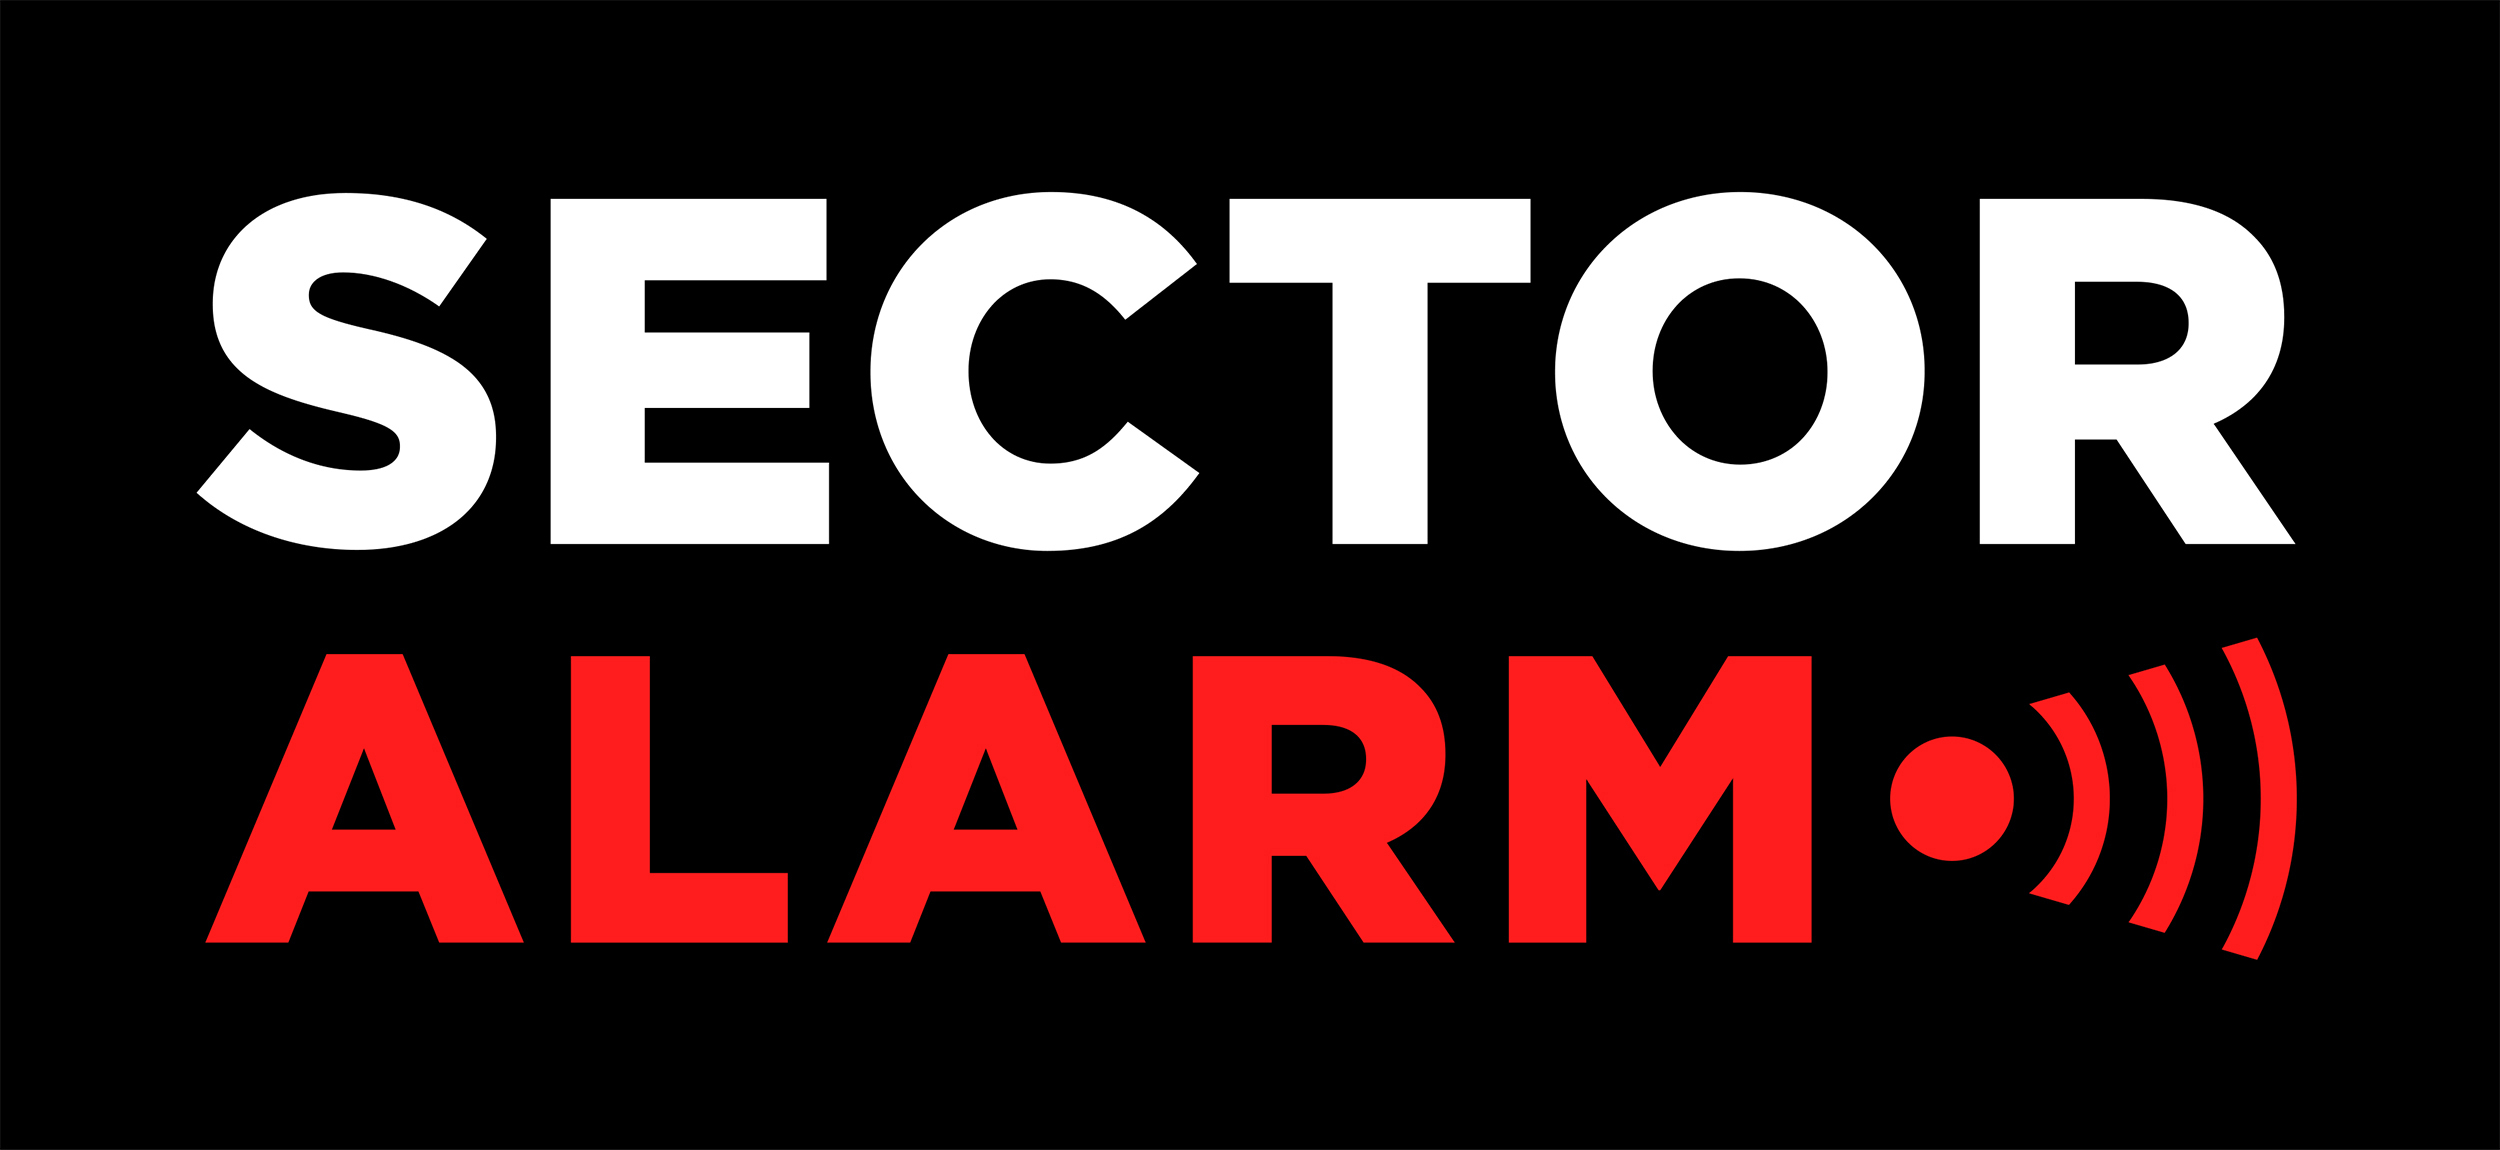 Larmbolaget Sector Alarms logotyp